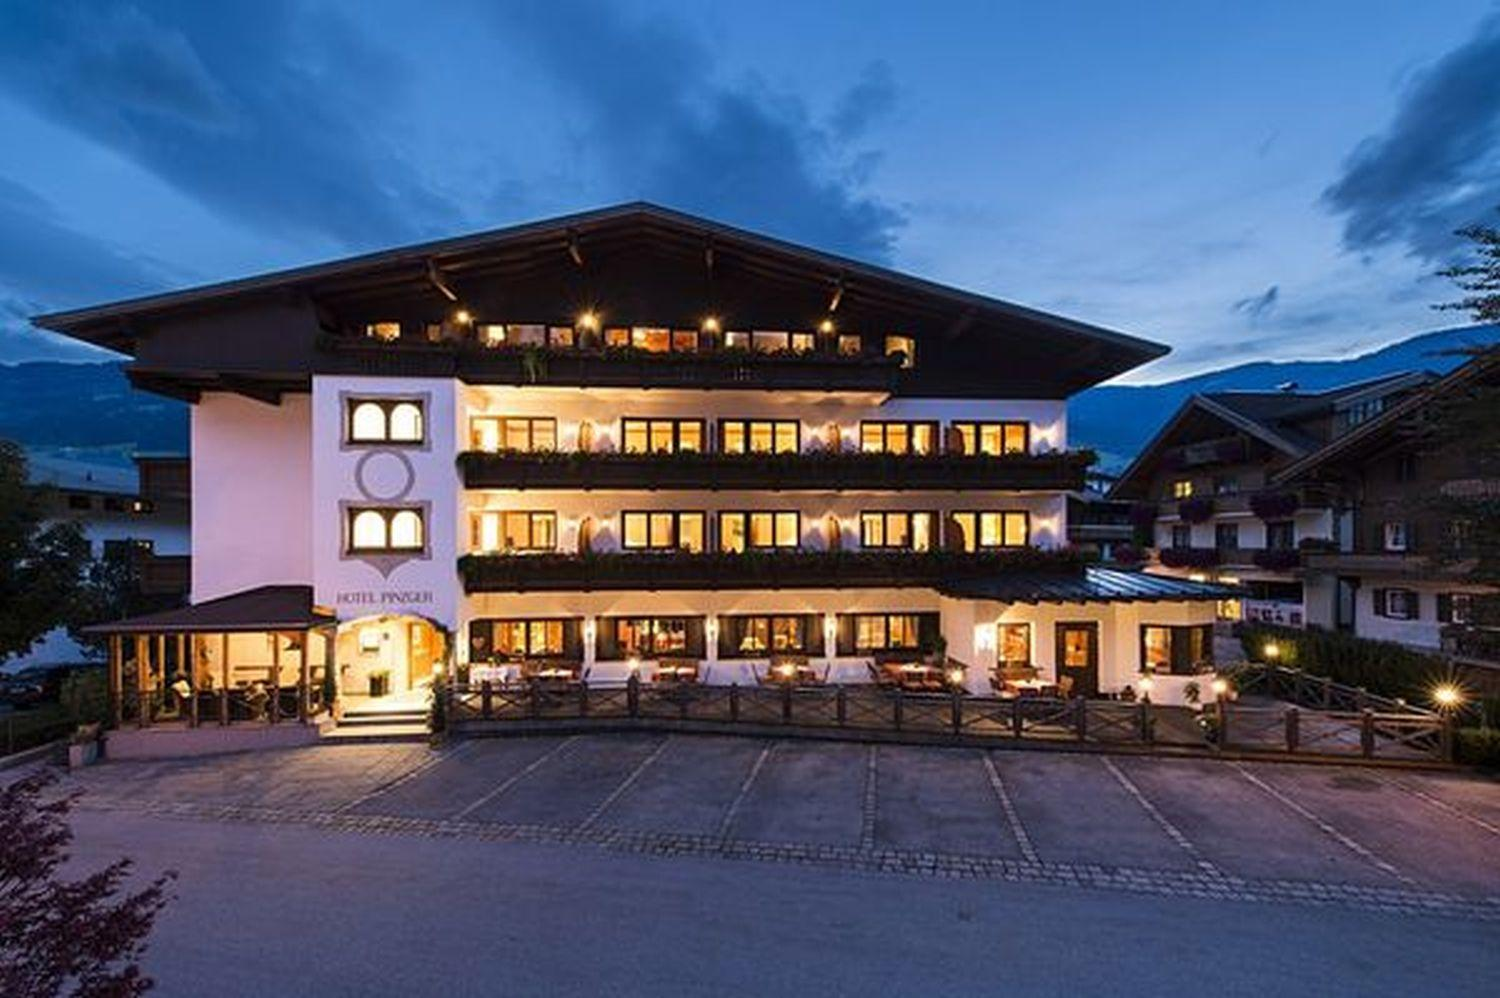 Hotel zum pinzger in stumm im zillertal for Design hotel zillertal